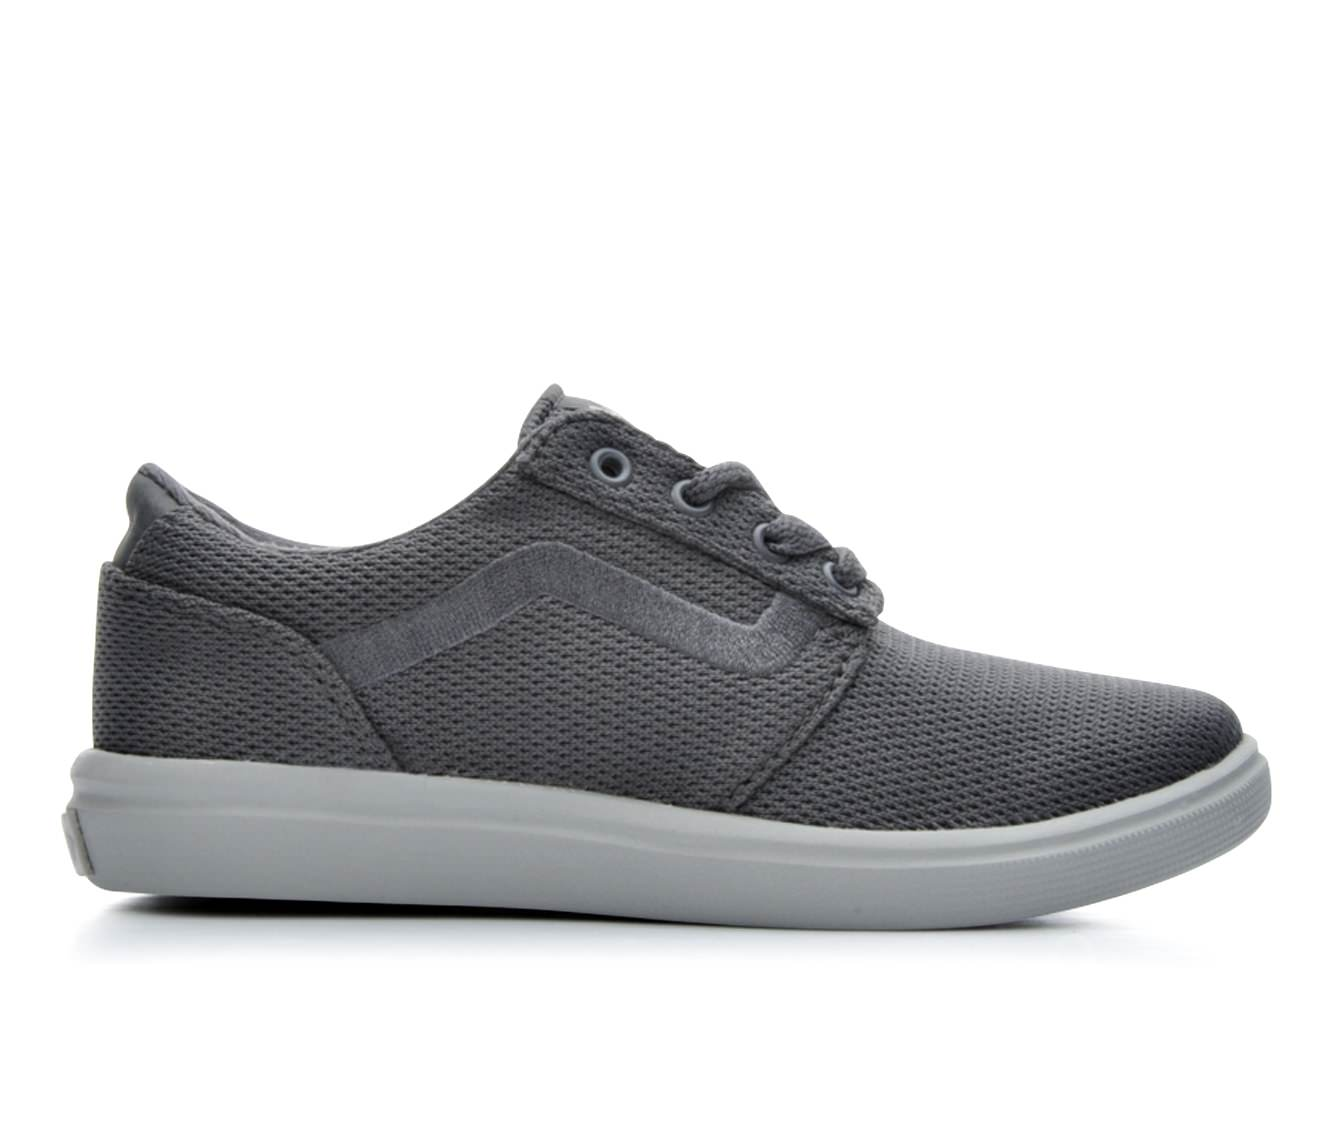 Boys' Vans Chapman Lite Skate Shoes (Grey)